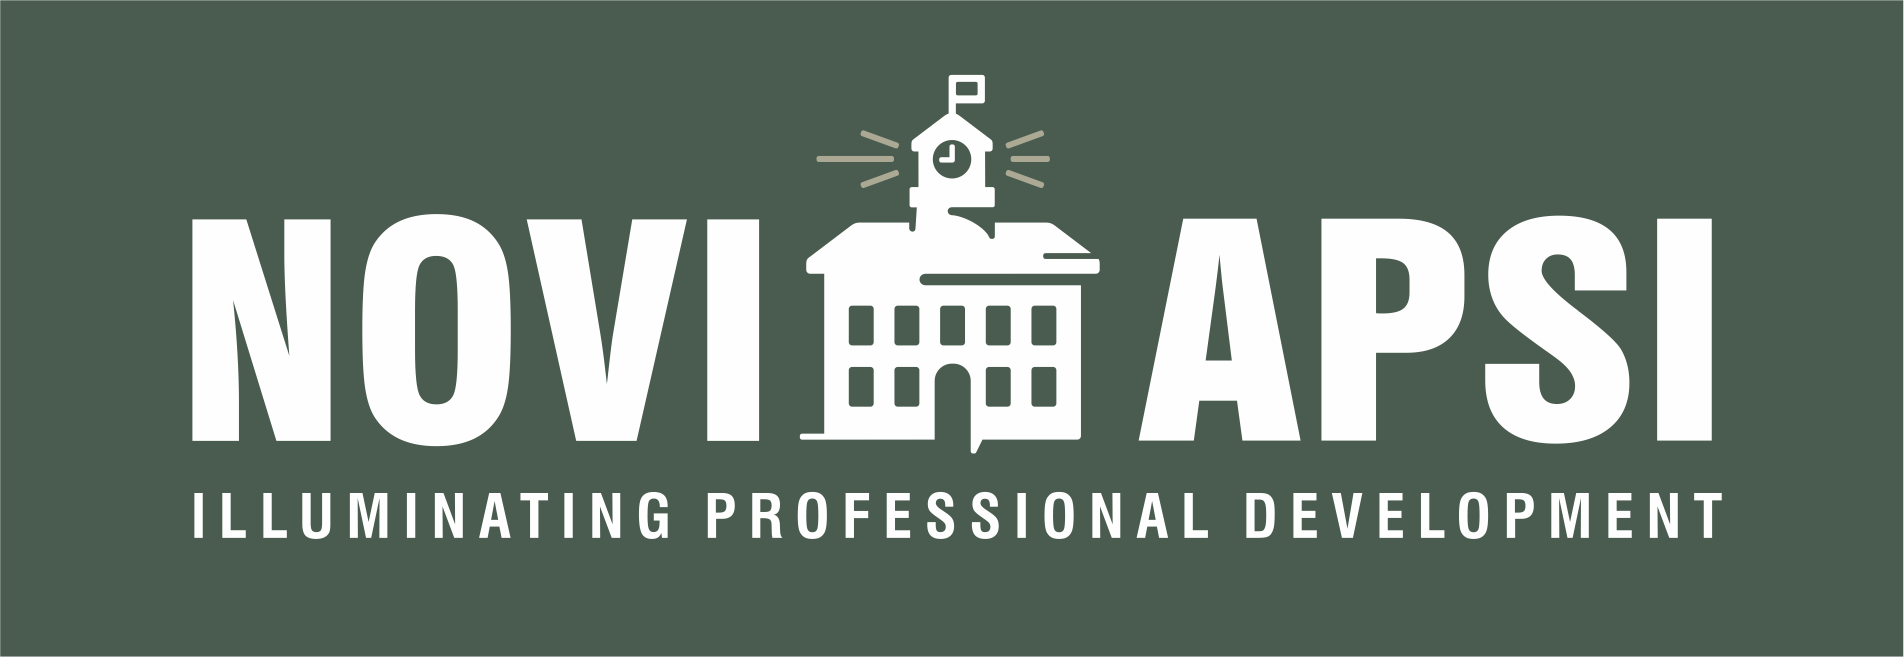 Novi AP Summer Institute 2021 - Online, Session 1